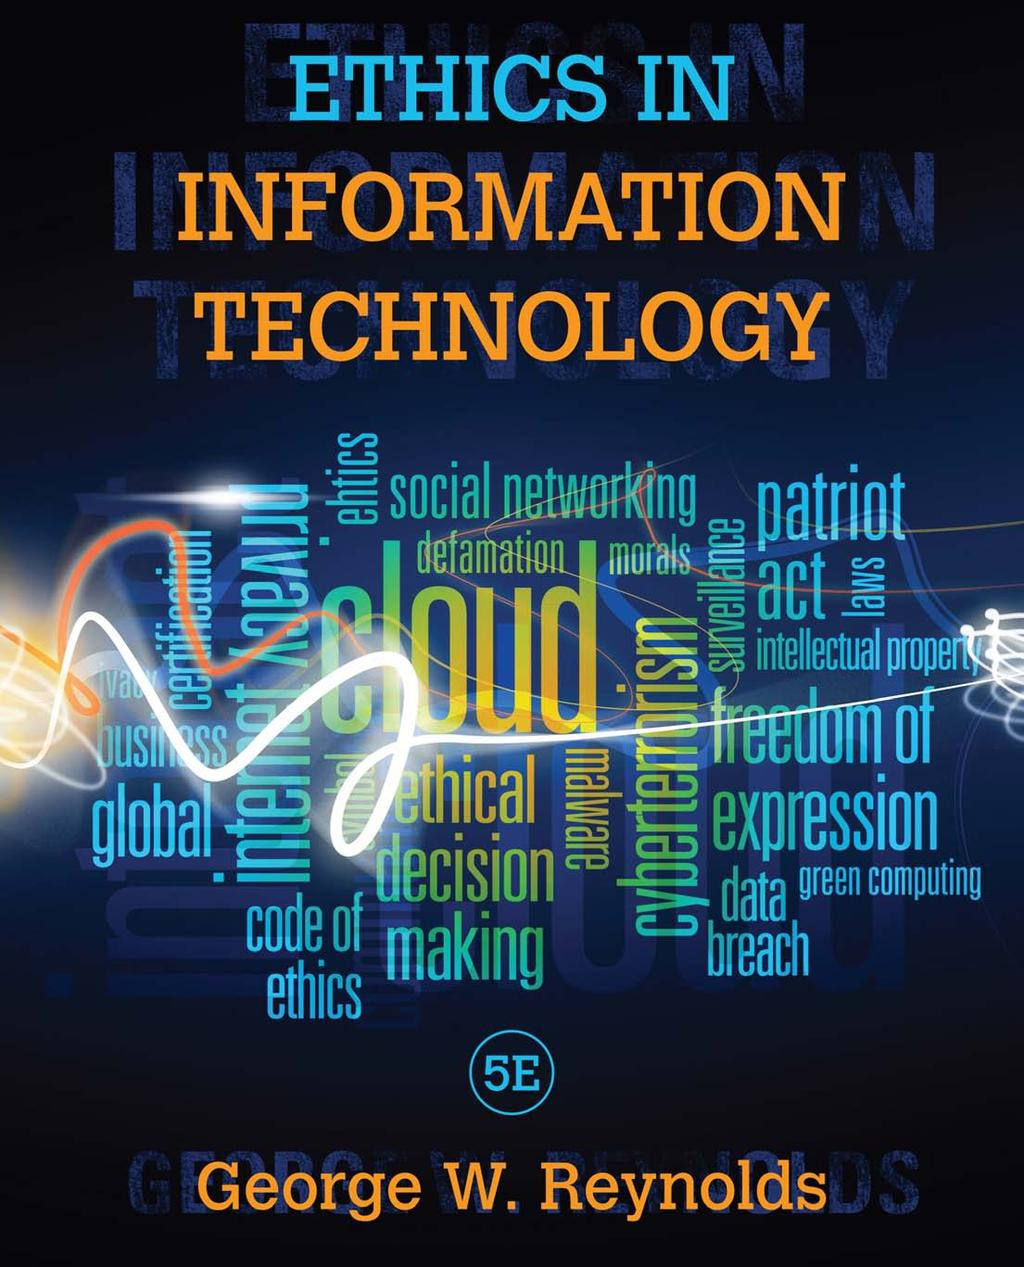 ETHICS IN INFORMATION TECHNOLOGY - PDF